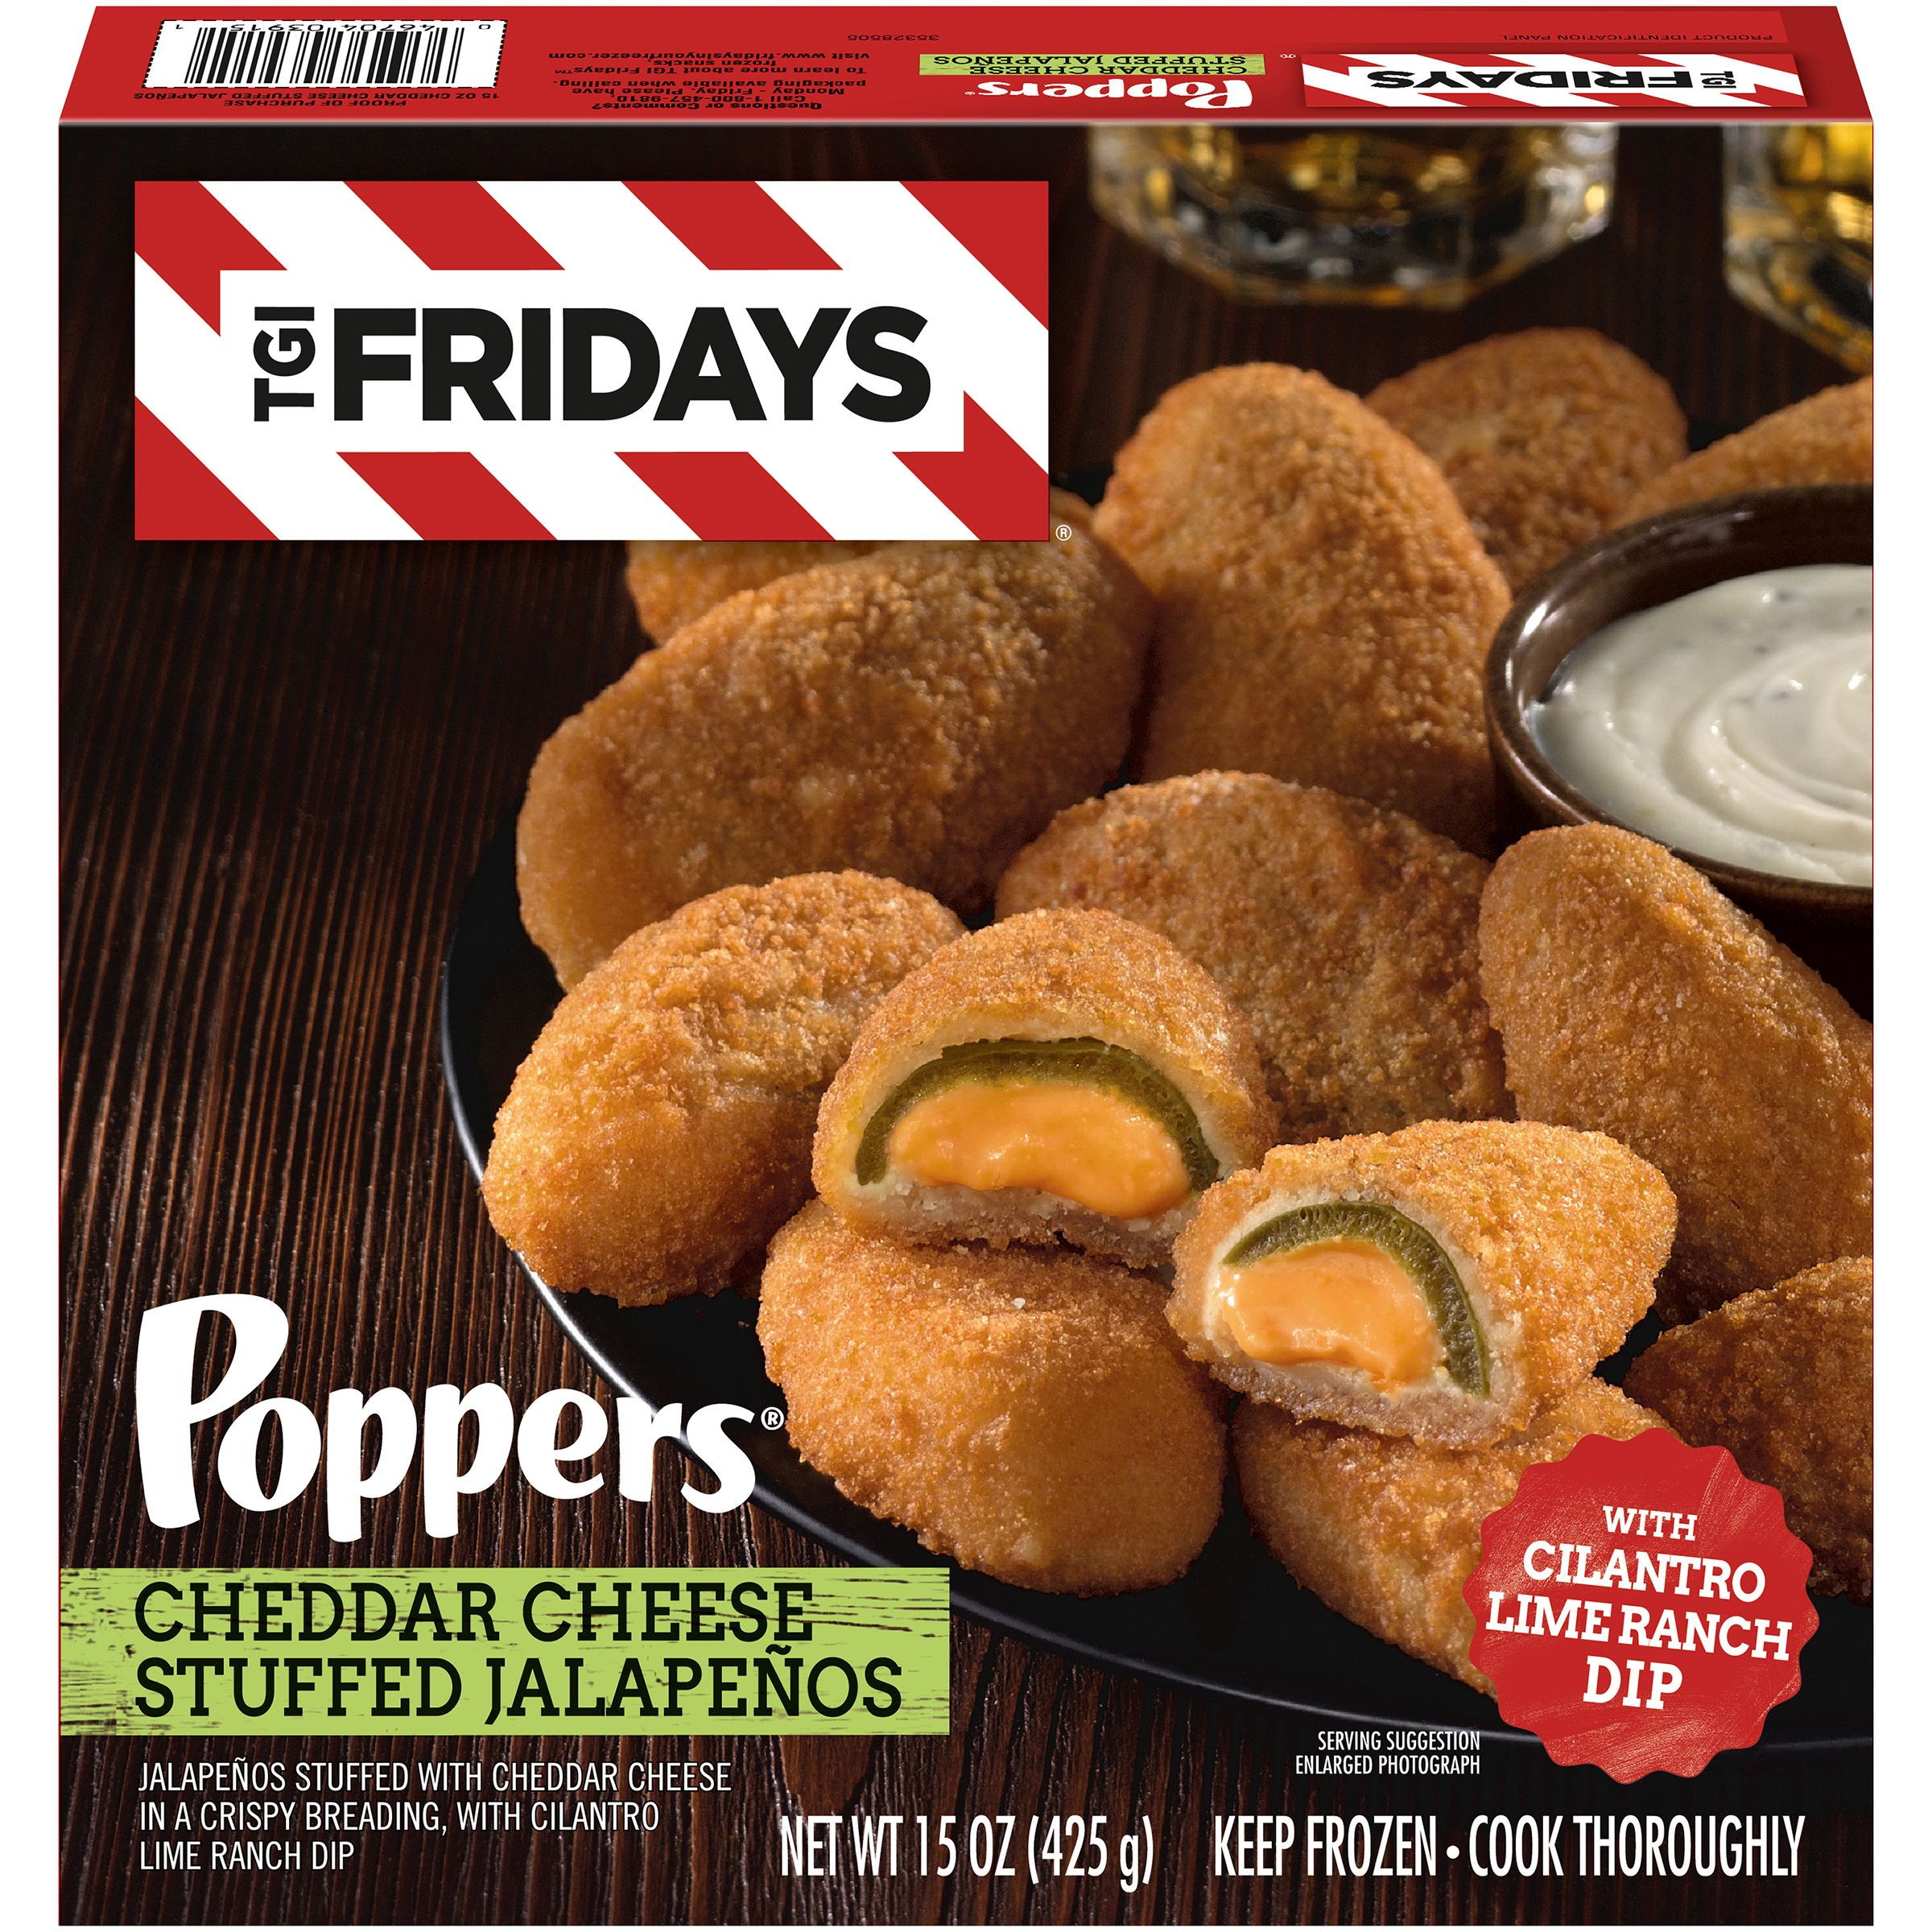 Tgi Fridays Cheddar Cheese Stuffed Jalapeno Poppers With